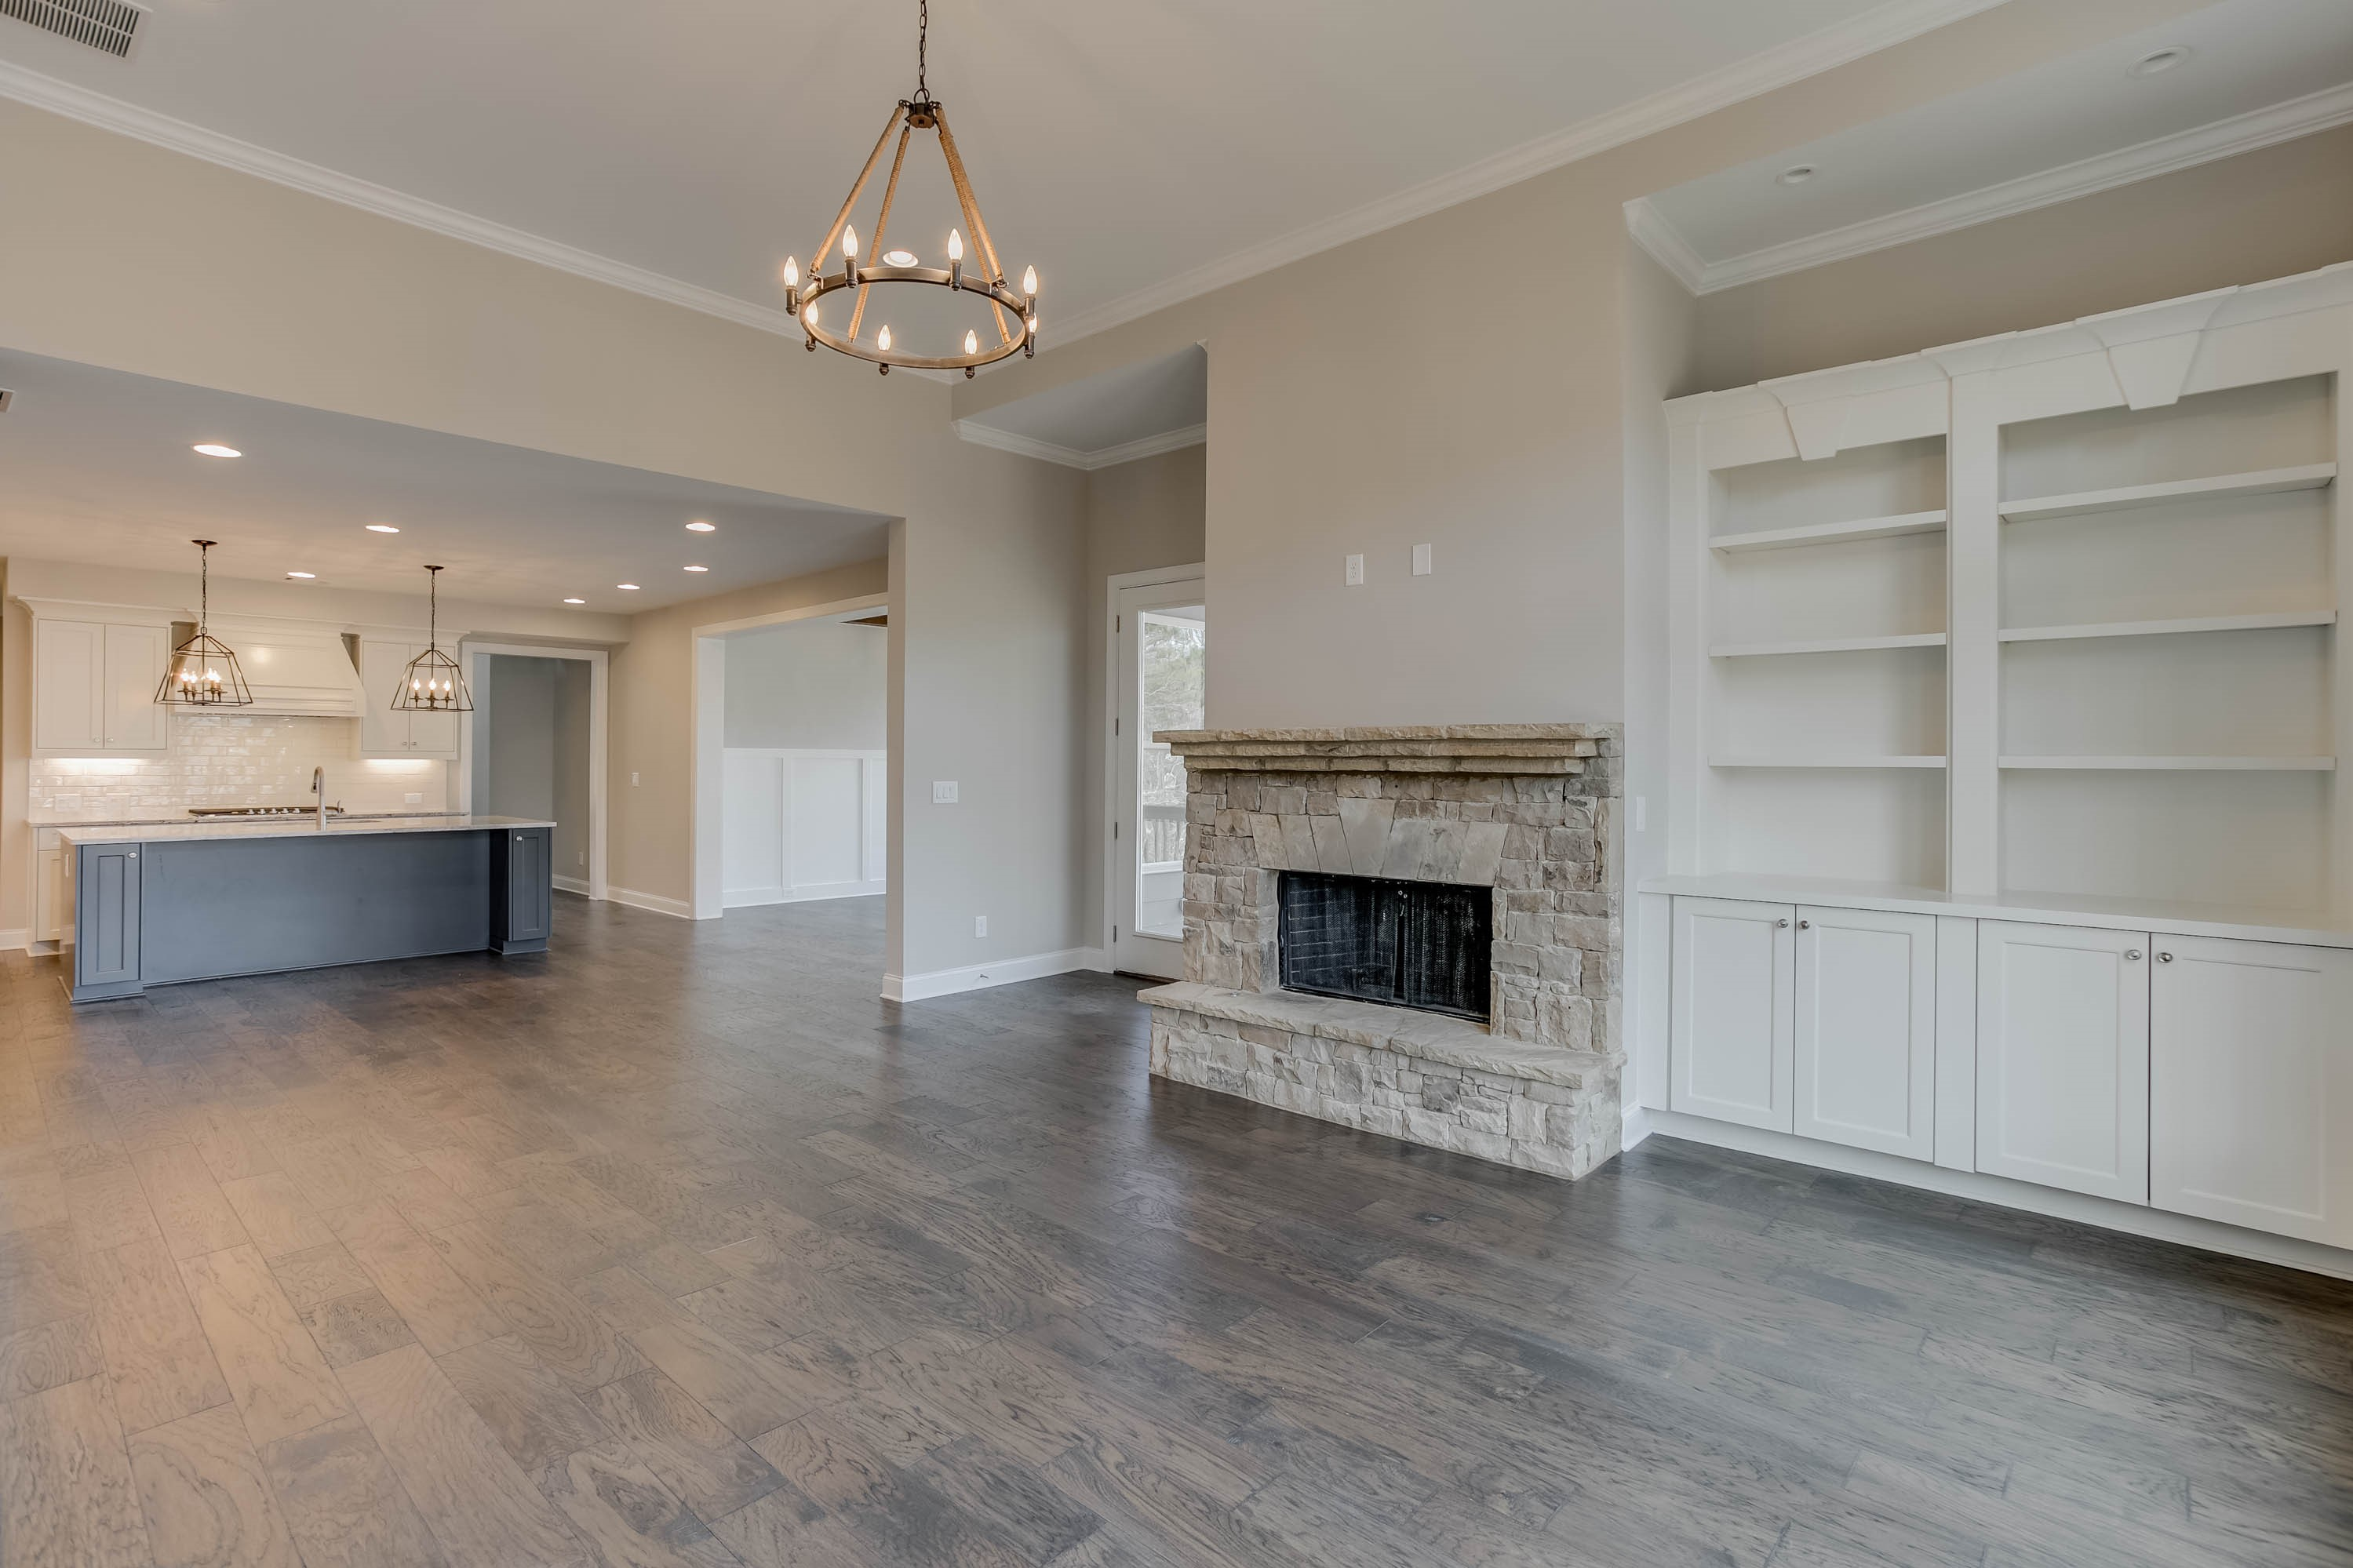 SR Homes Announces Builder Closeout at New Cumming Community